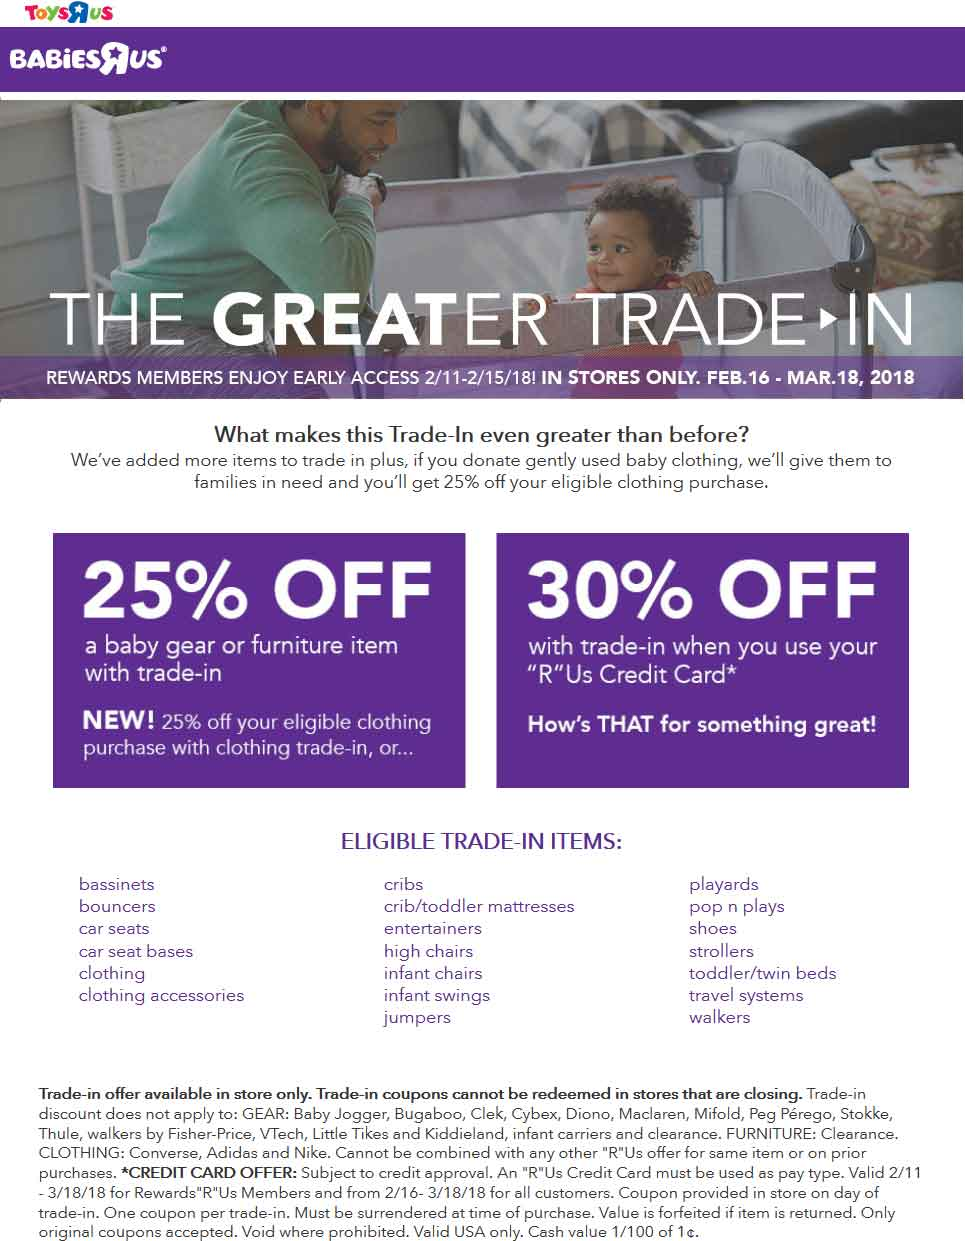 babies r us coupons - 25% off an item with trade-in at babies r us